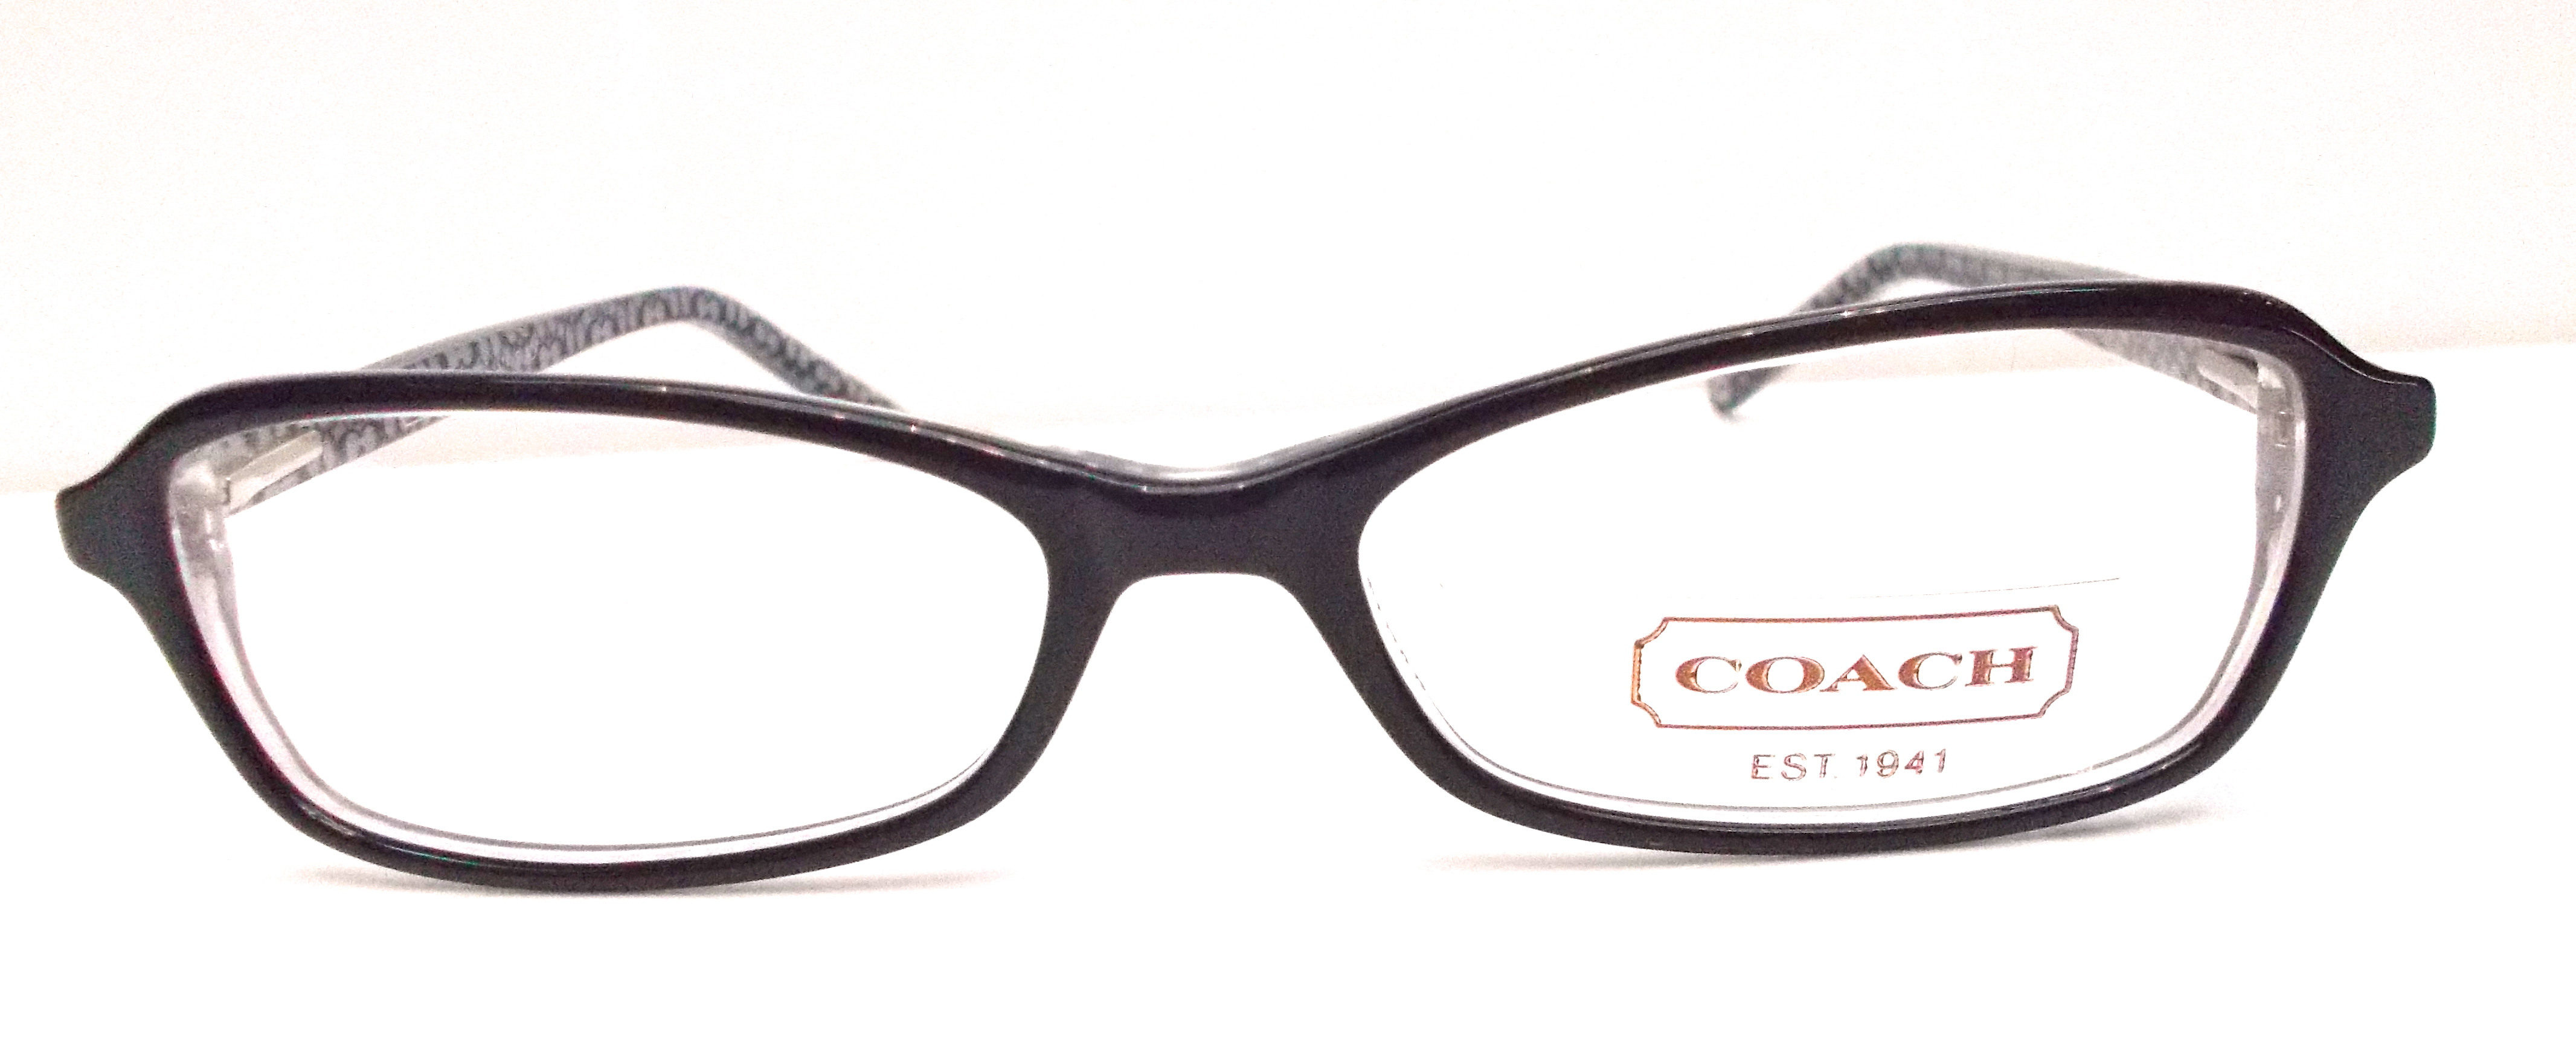 Coach Outlet Eyeglass Frames : H&S Optical Coach Eyeglasses Lizzie (514) Black Online ...